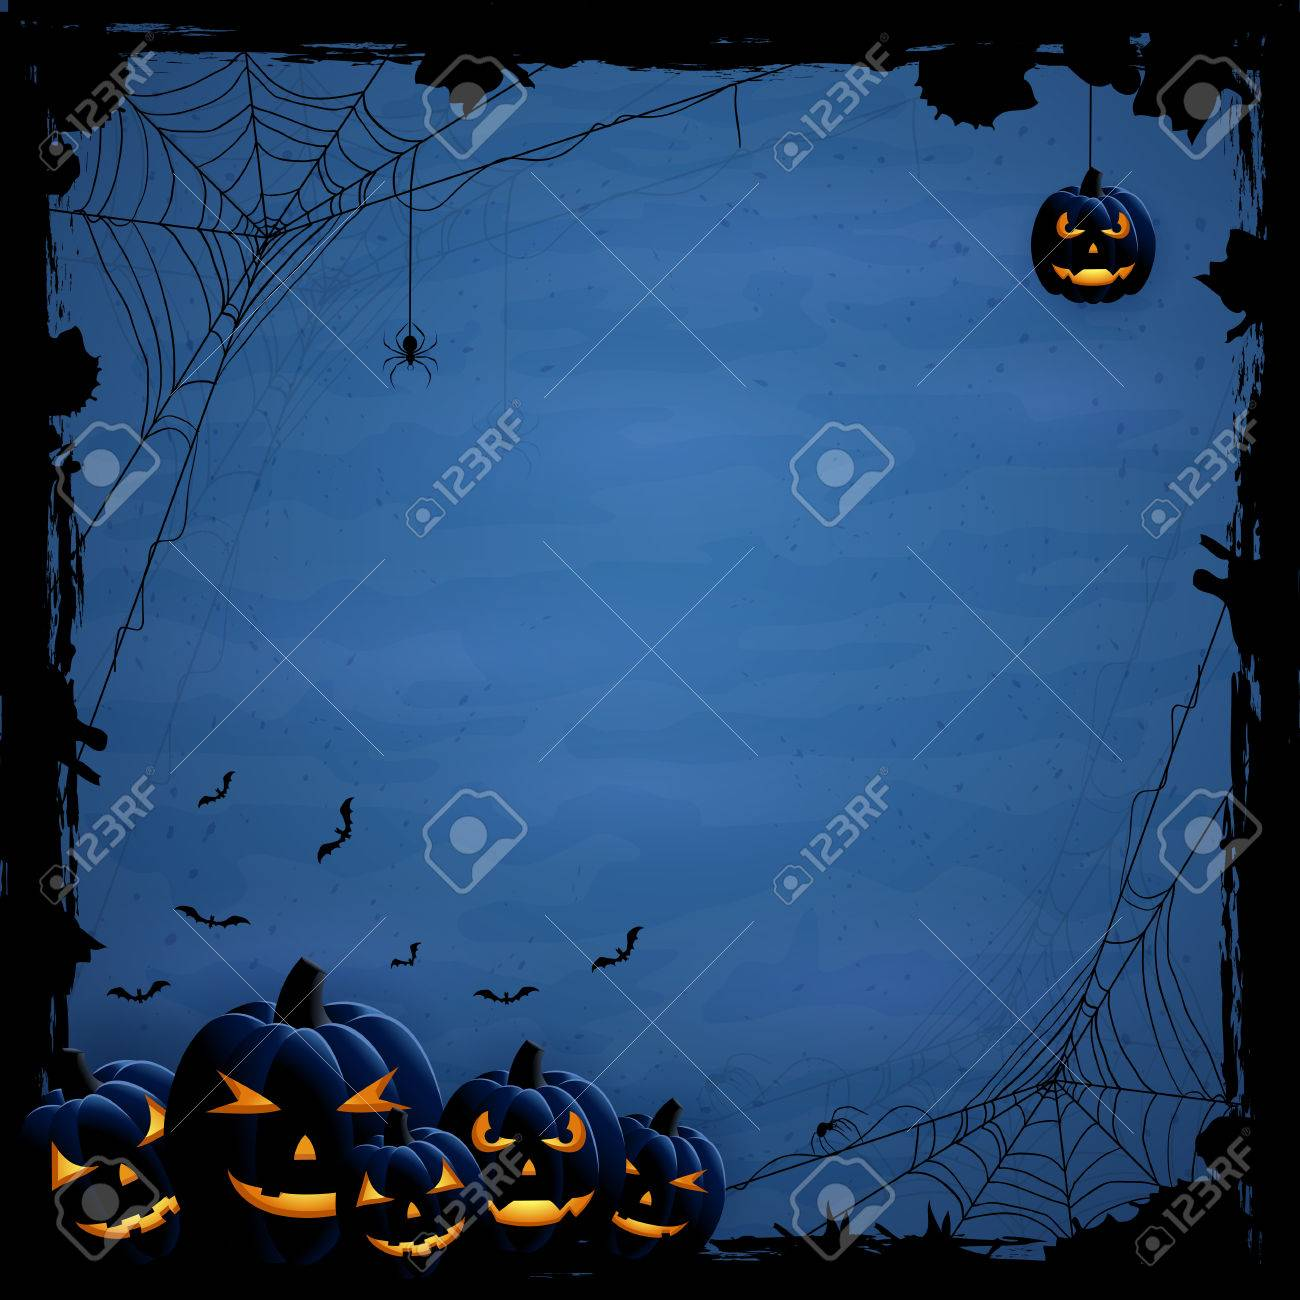 Blue Halloween background with pumpkins and spiders, illustration. - 44964512